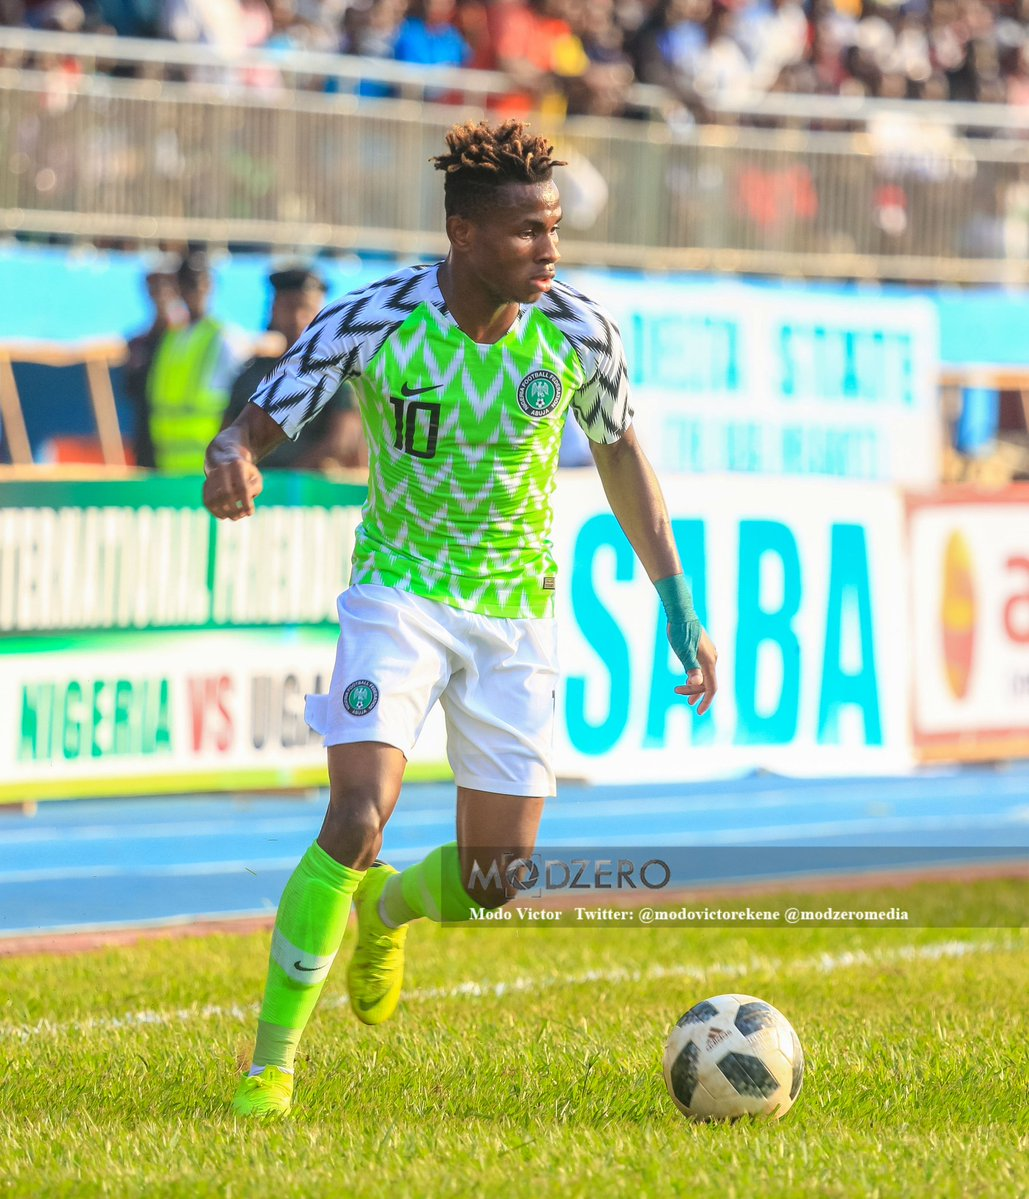 NFF Awards : Villarreal, Al Nassr, Enugu Rangers React To Their Players Scooping Awards